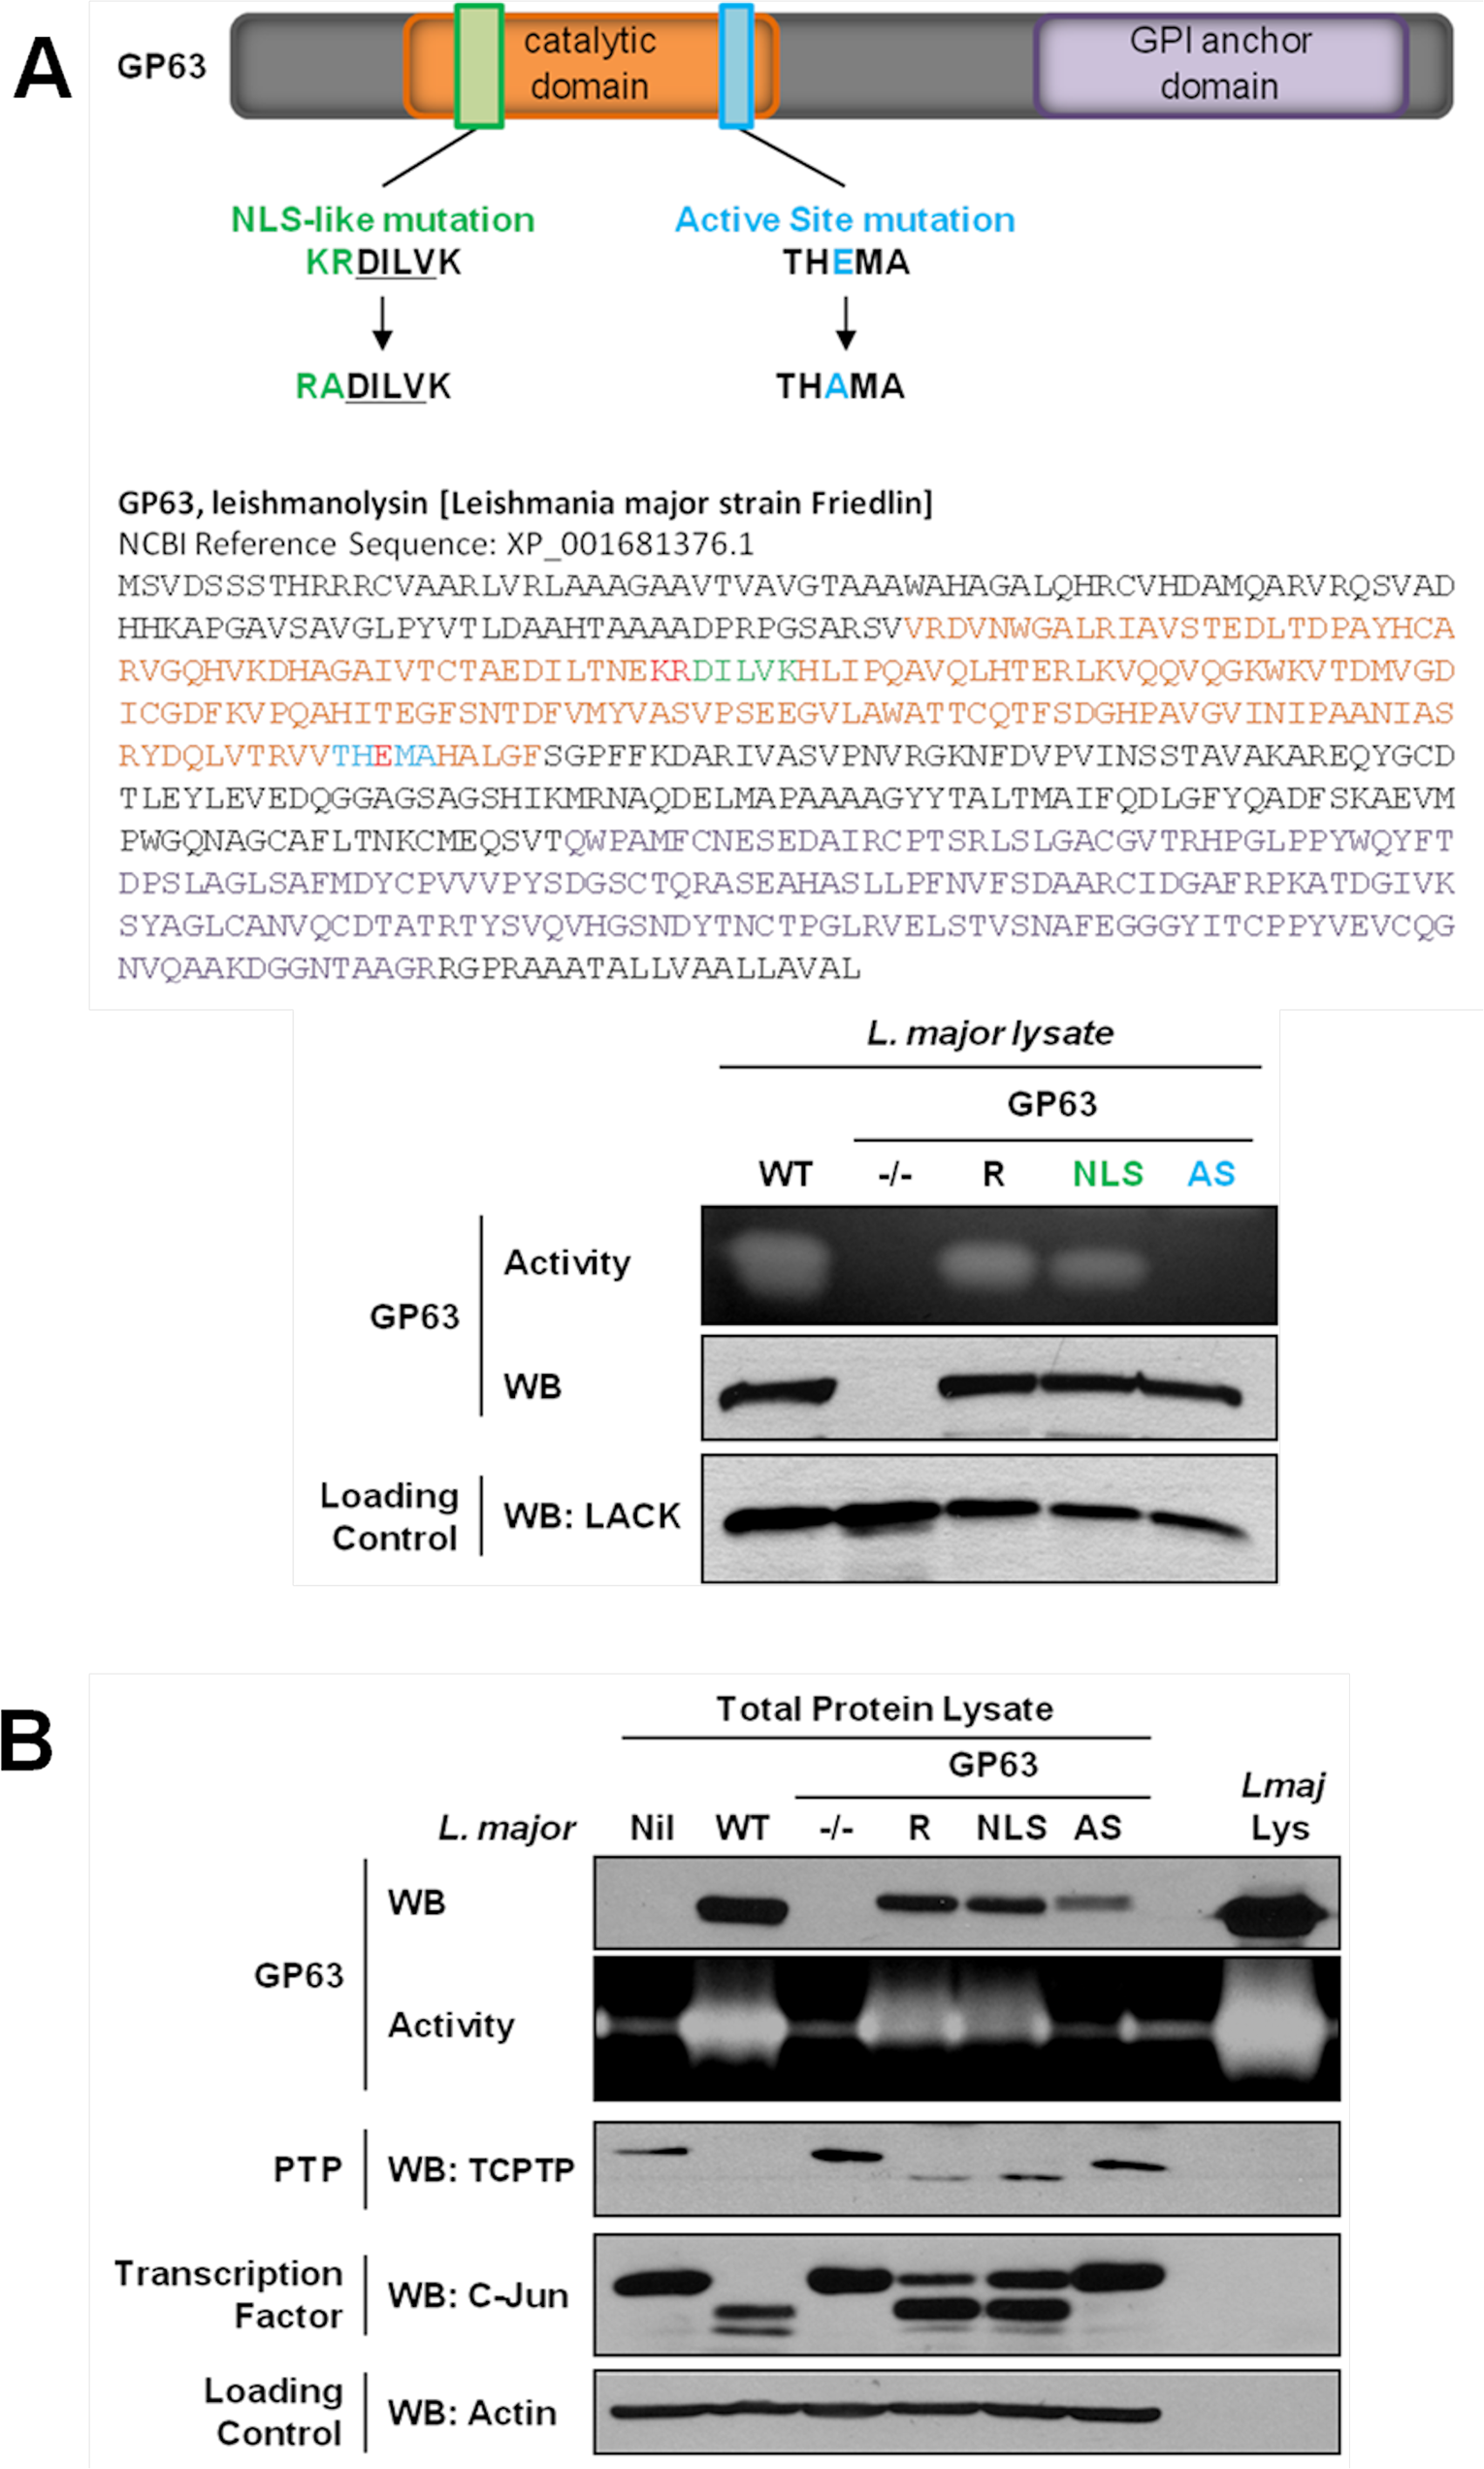 GP63-dependent cleavage of nuclear localized substrates is NLS sequence independent.